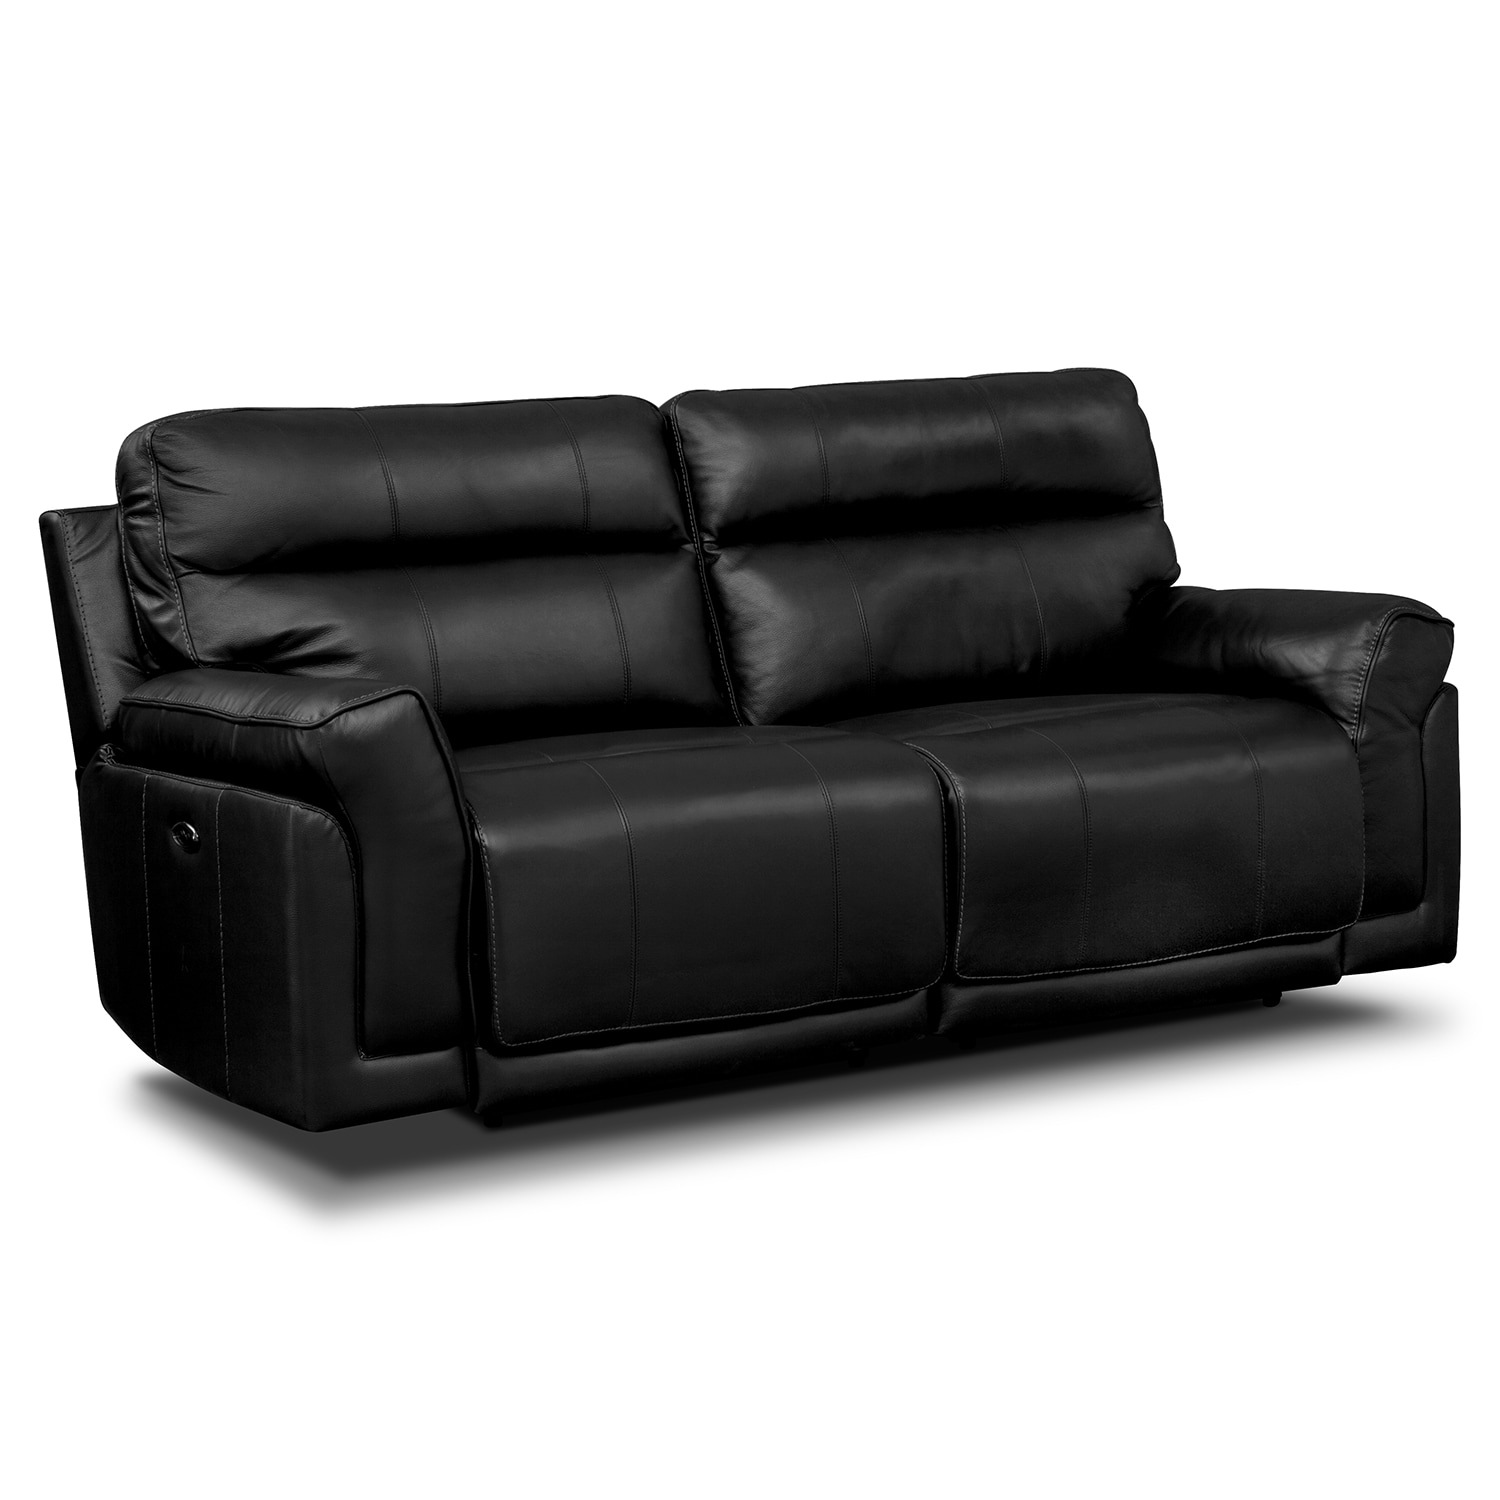 [Voyager 2 Pc. Power Reclining Sofa]